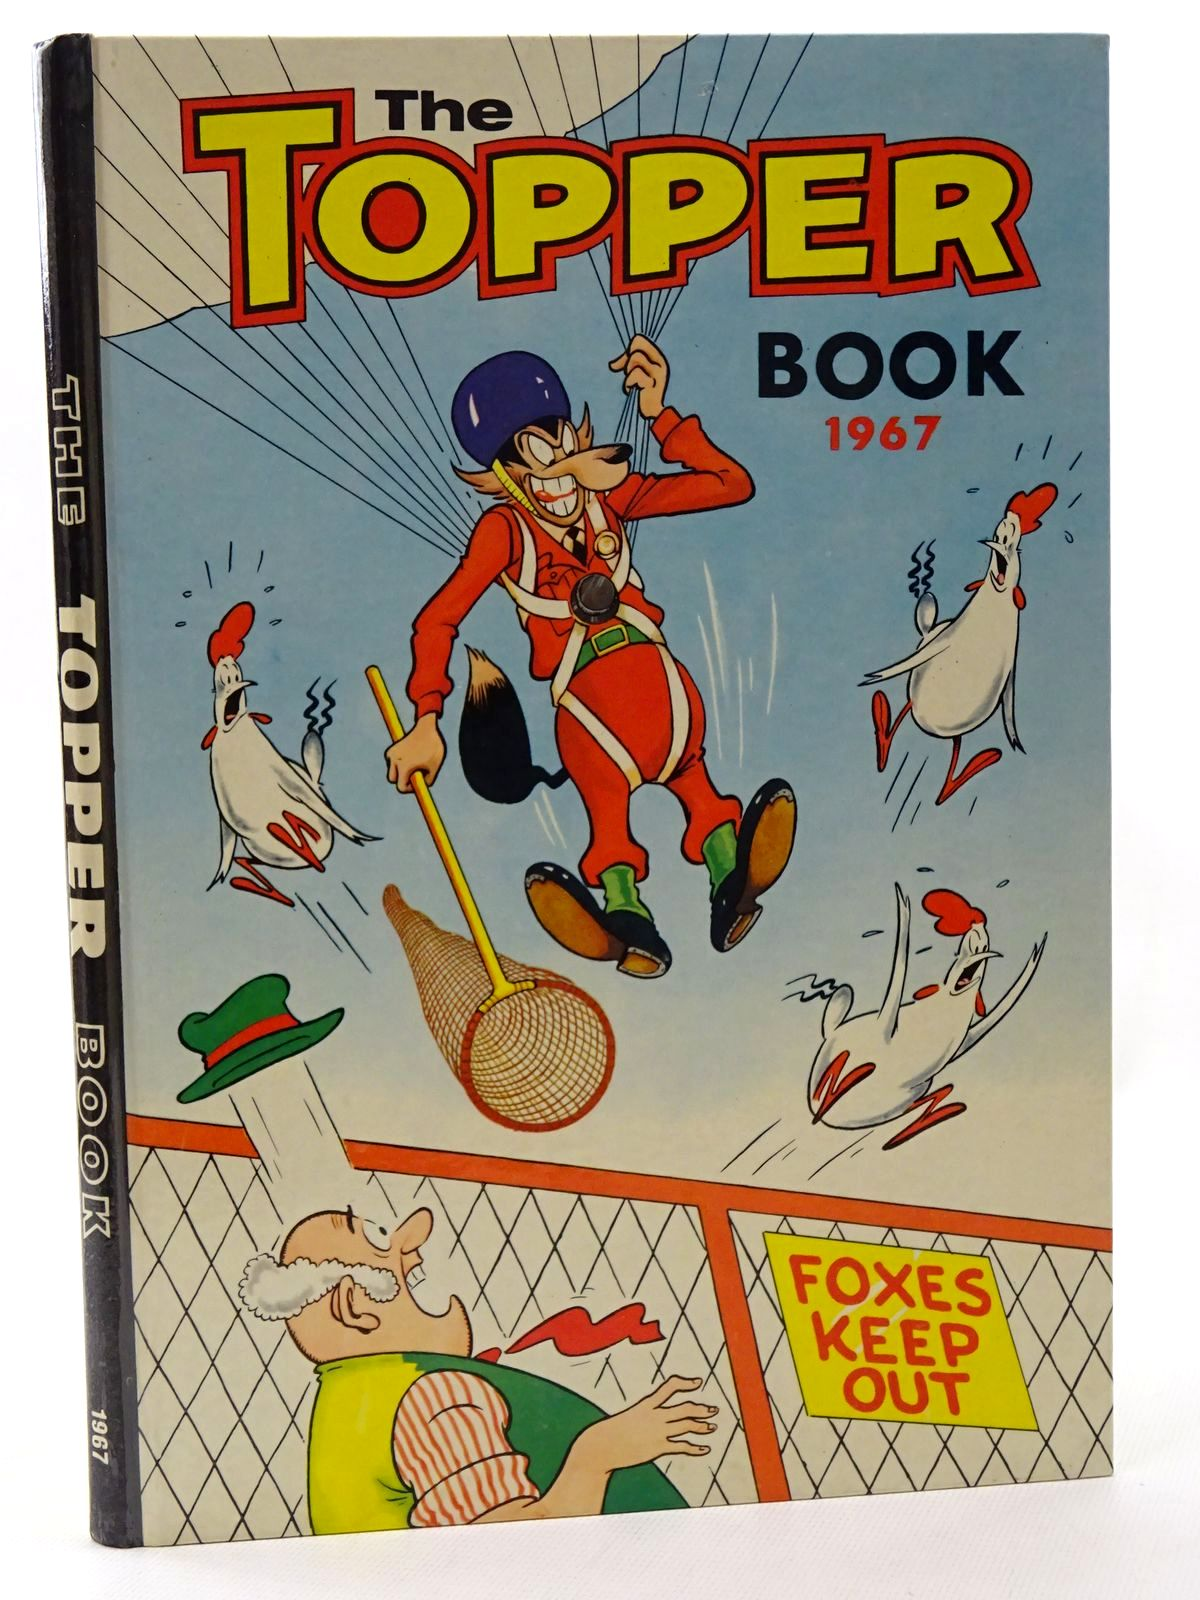 Photo of THE TOPPER BOOK 1967 published by D.C. Thomson & Co Ltd. (STOCK CODE: 1317226)  for sale by Stella & Rose's Books